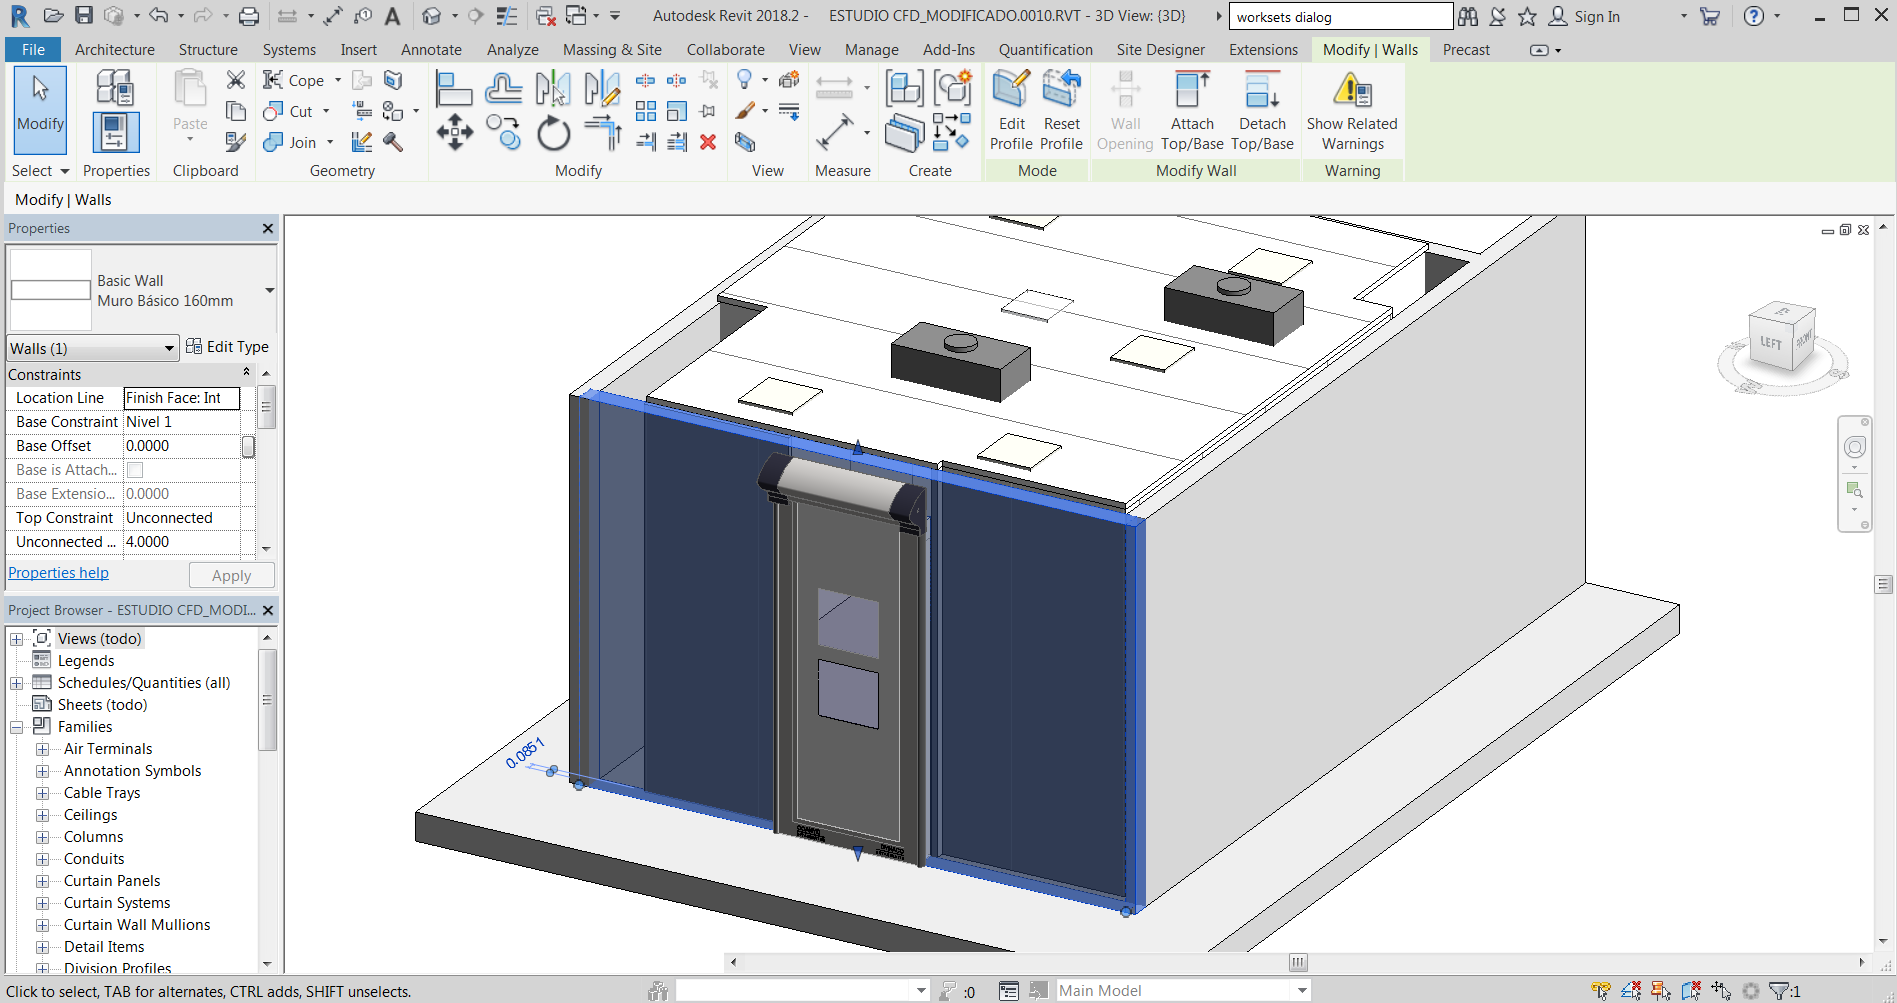 Revit to CFD workflow - Tools to take a Revit model into CFD